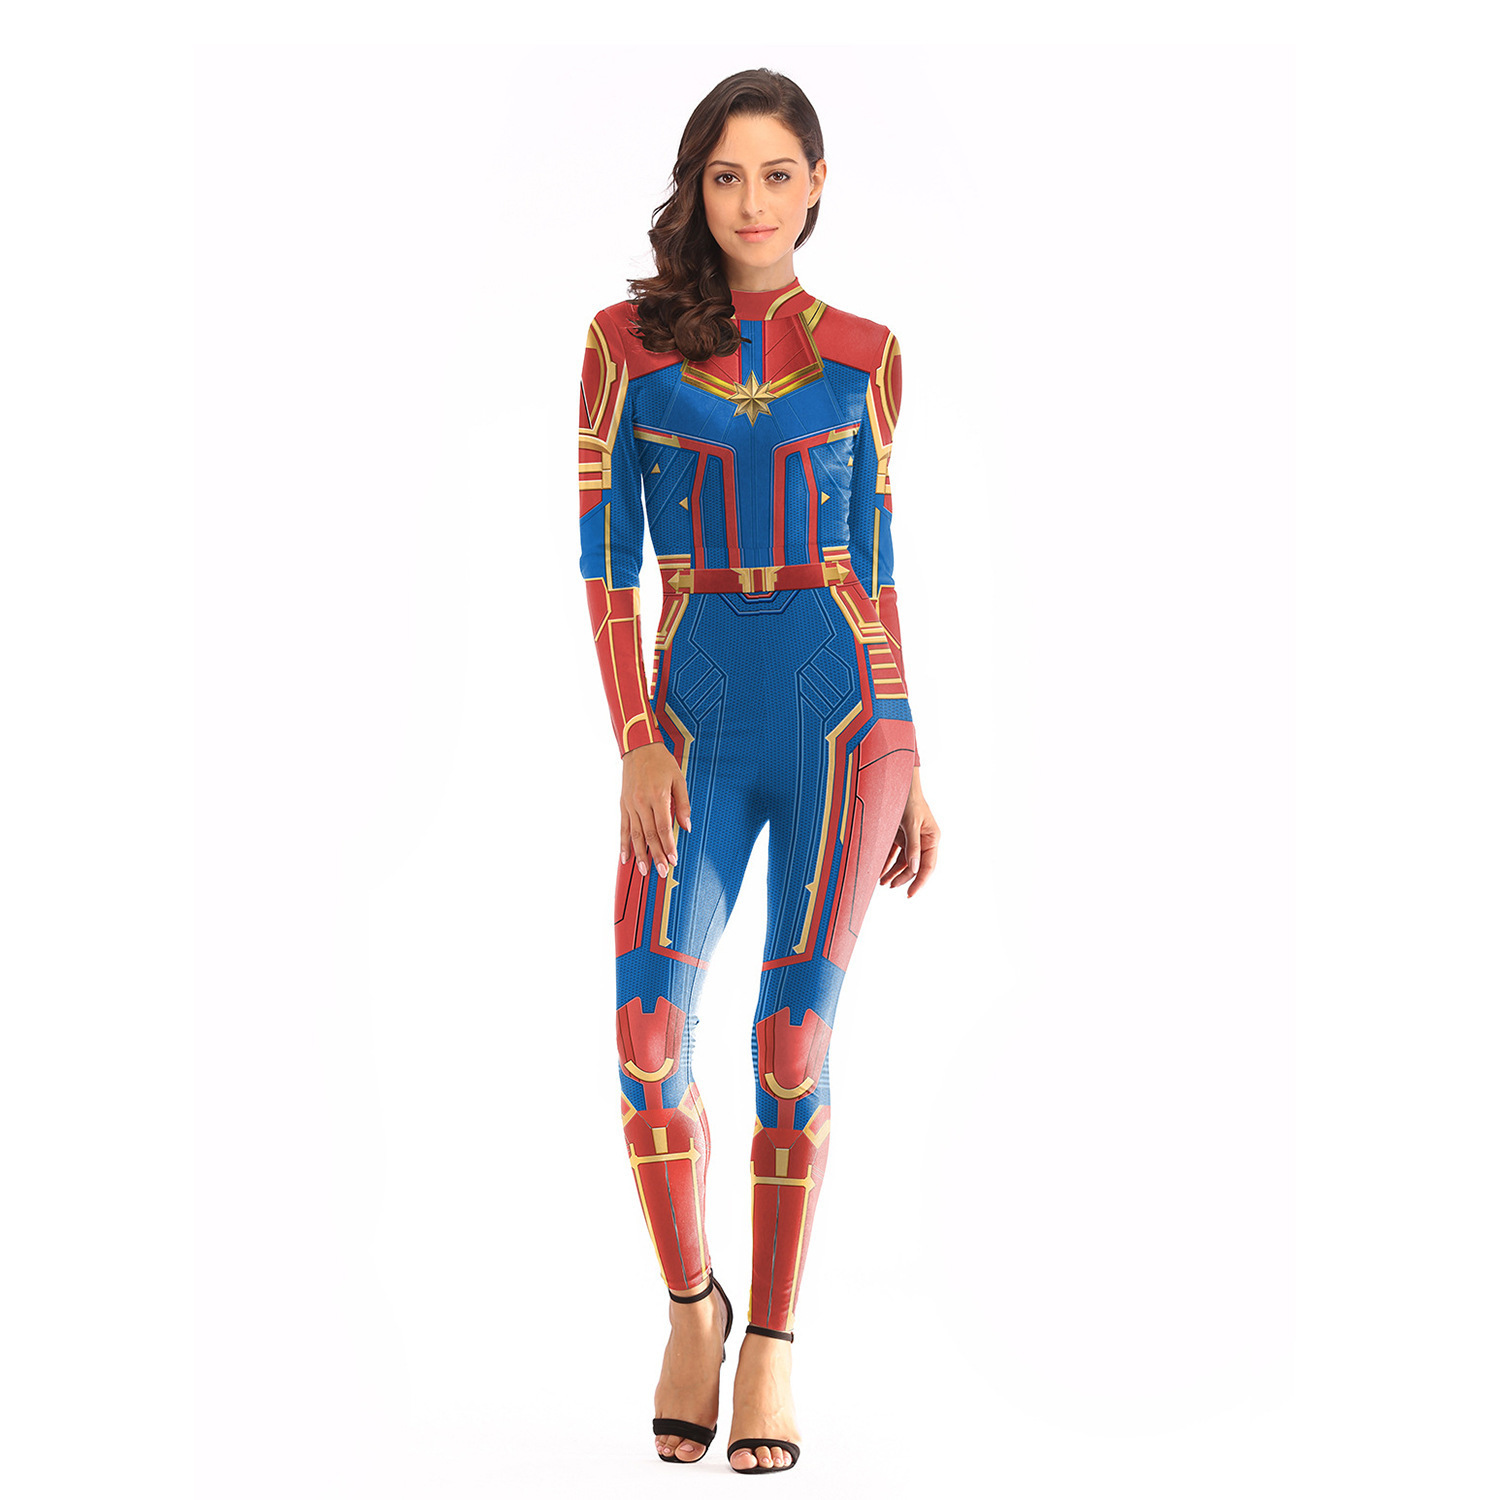 Adult Captain Marvel Cosplay Costume Women Superhero Marvel Women Cosplay Halloween Ms Marvel Carol Danvers Jumpsuit Bodysuit Buy At The Price Of 16 37 In Aliexpress Com Imall Com Long sleeve printed red, gold and blue stretch jumpsuit; imall